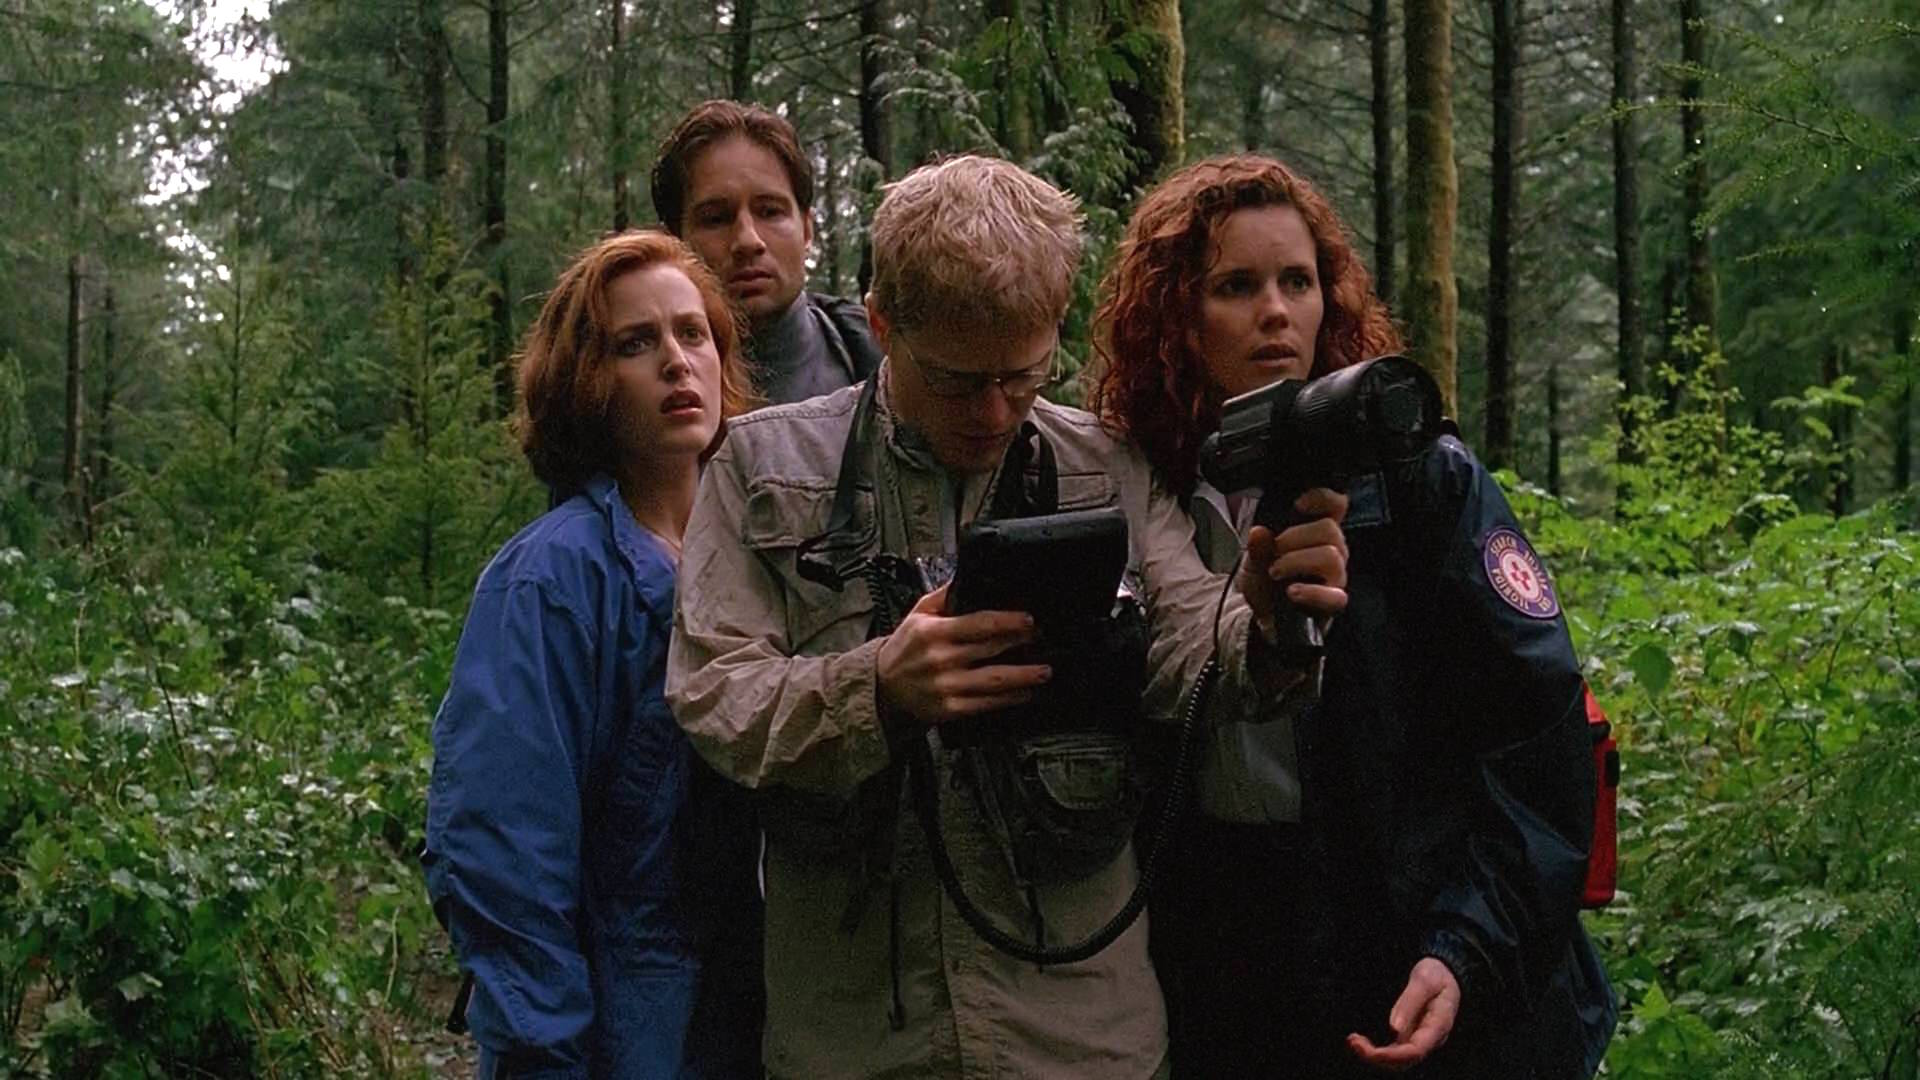 Gillian Anderson, David Duchovny, Colleen Flynn, and Anthony Rapp in The X Files (1993)